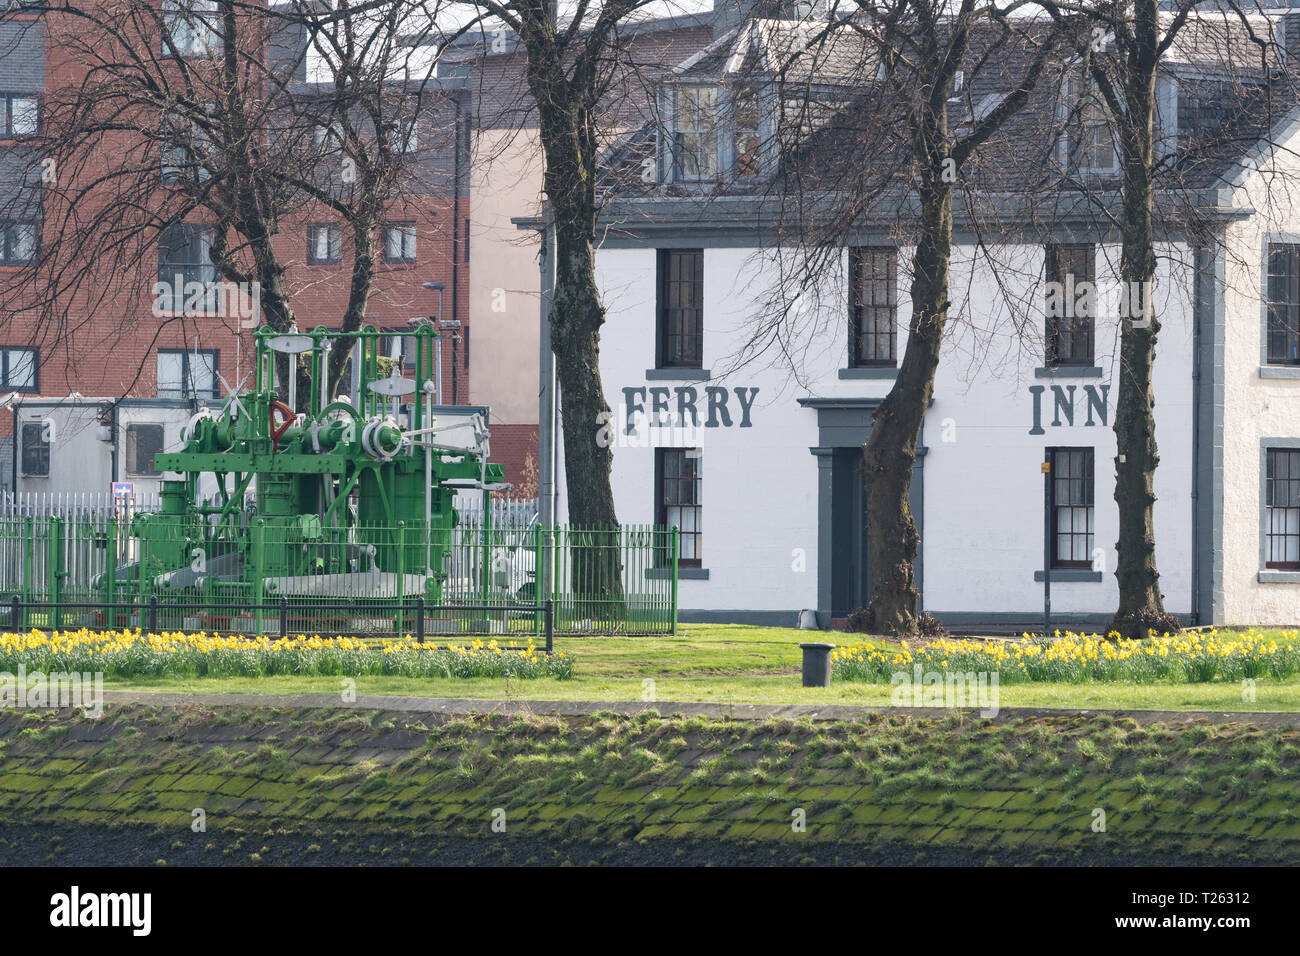 Ferry Inn, Renfrew and the engines from the paddle tug Clyde, Renfrew, Scotland, UK - Stock Image